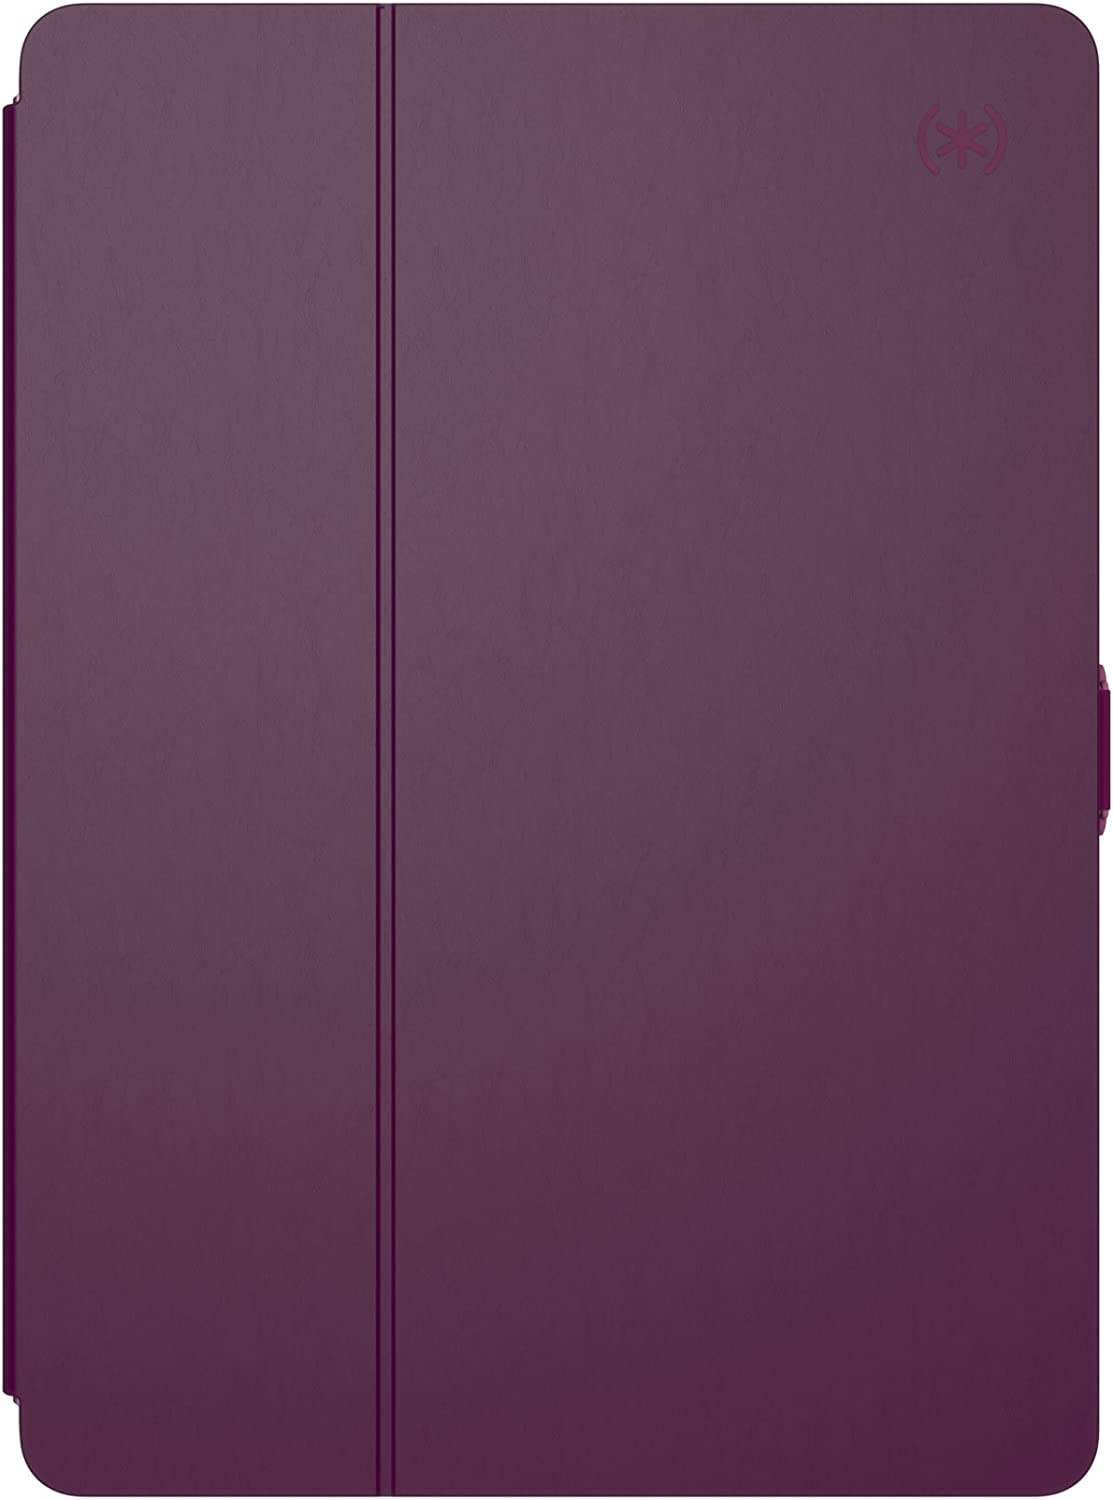 """Speck Products 91905-5748 Balance FOLIO Case and Stand for 10.5"""" iPad Pro (2017) with Magnets, Syrah Purple/Magenta Pink"""